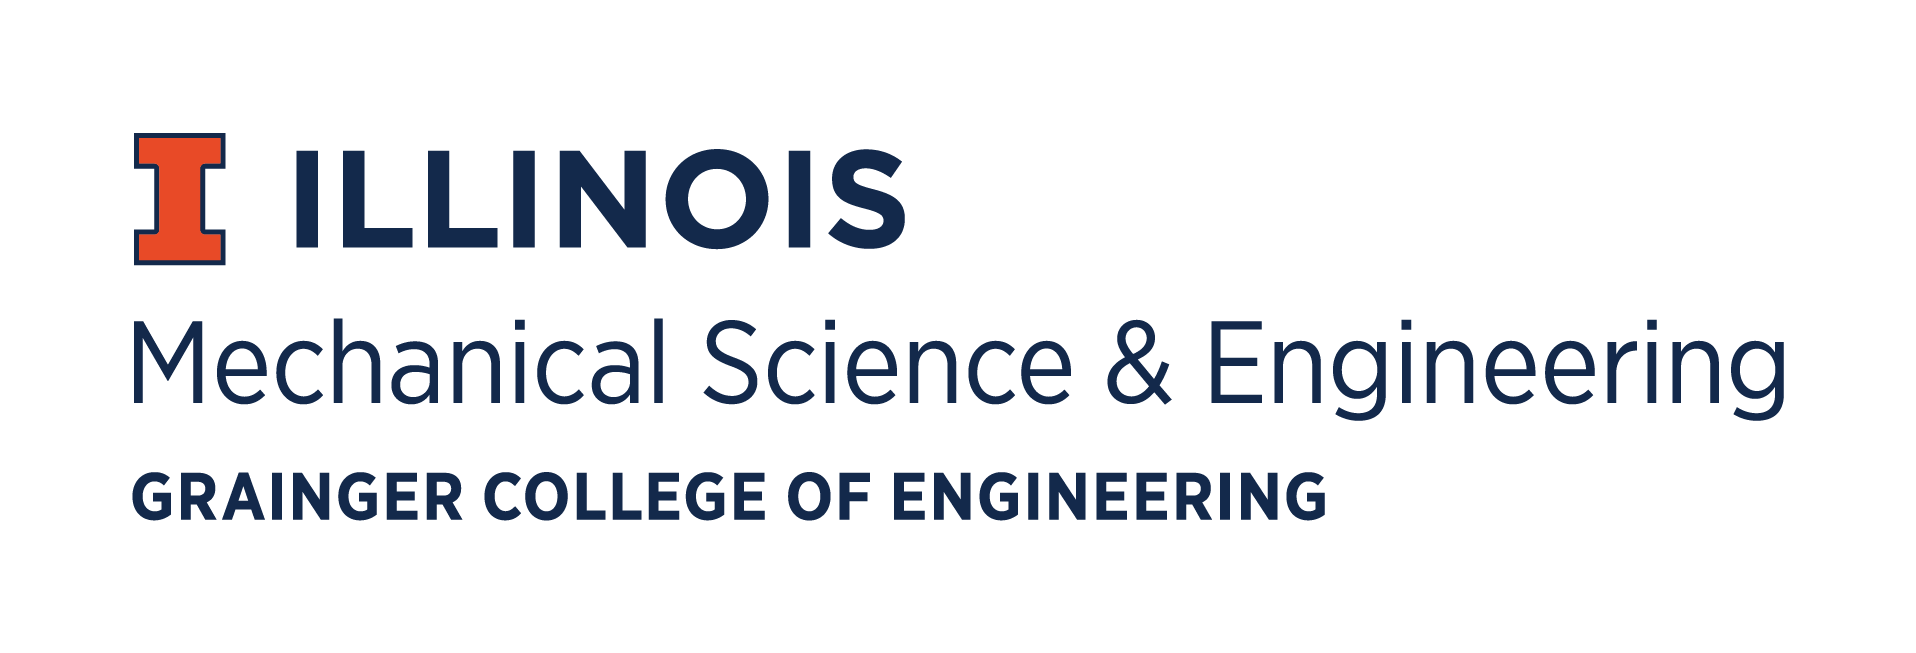 Mechanical Science and Engineering, University of Illinois at Urbana-Champaign